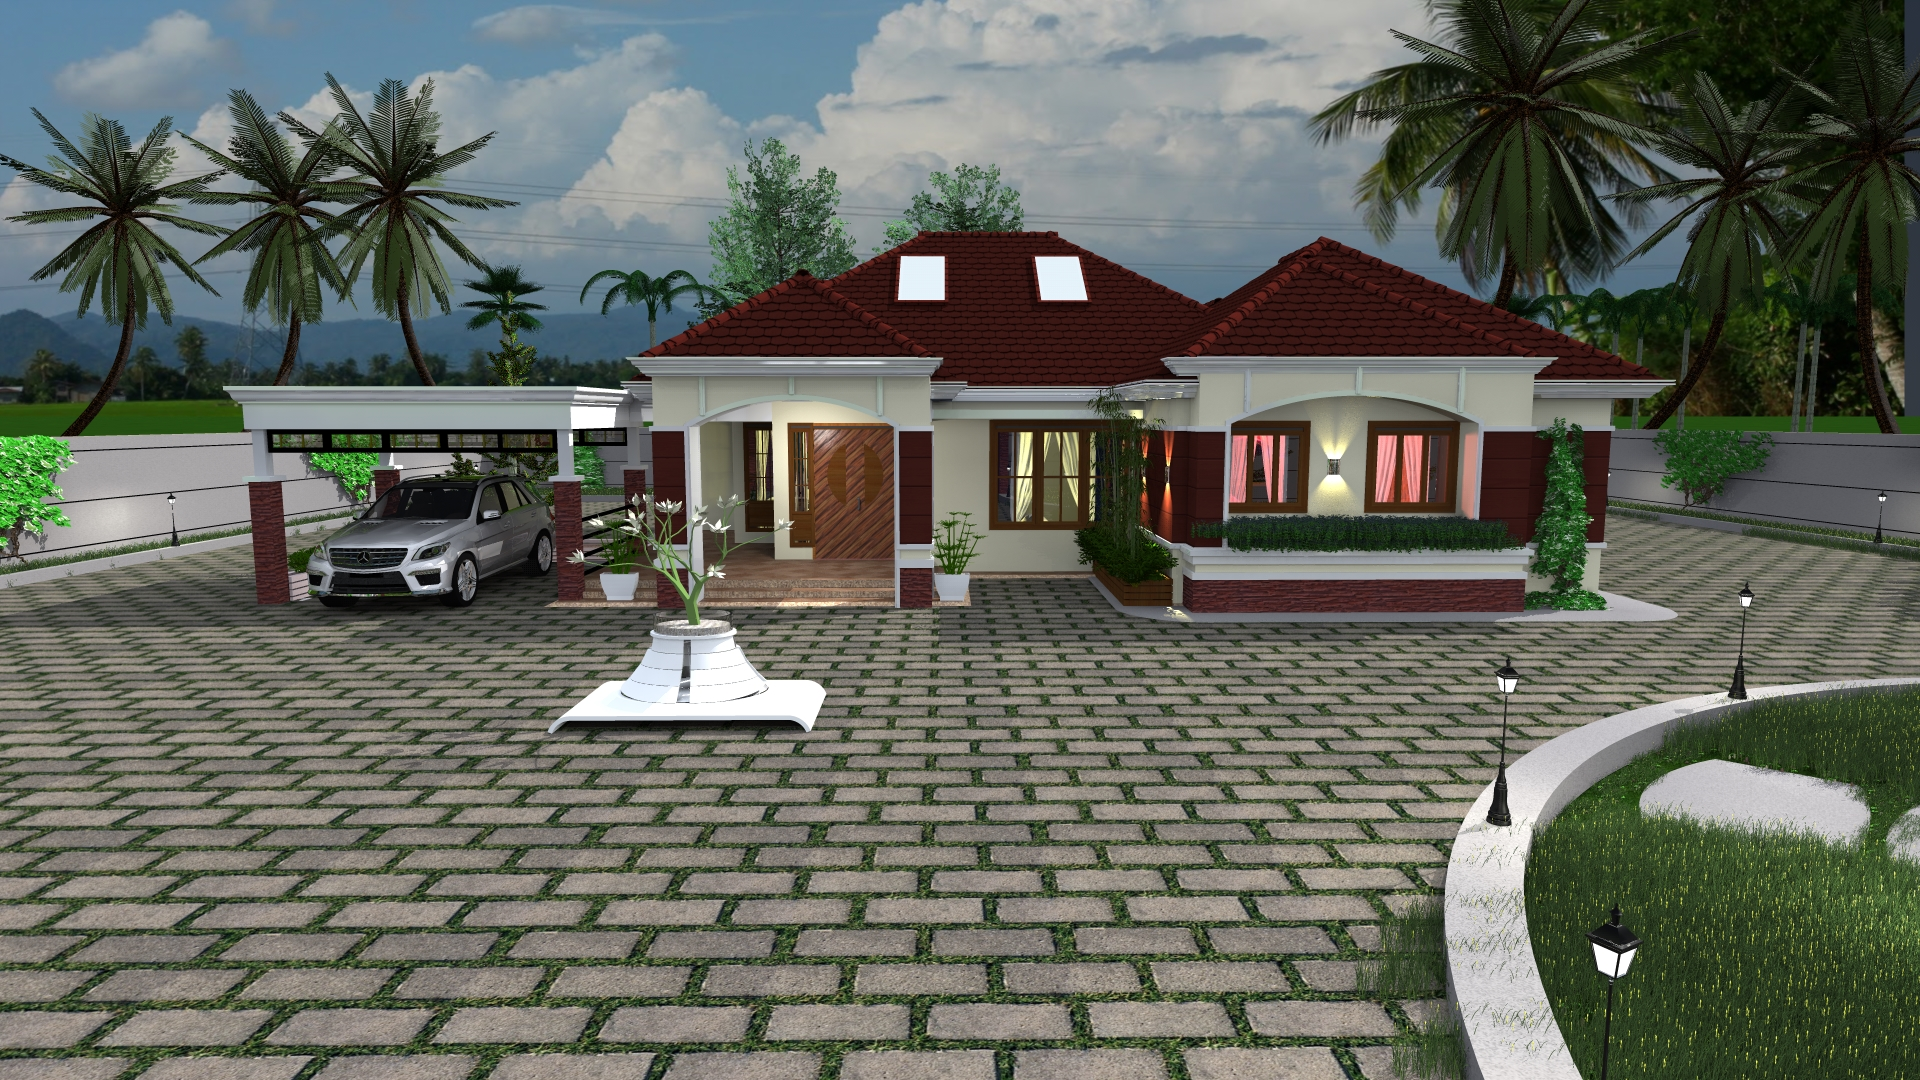 Four Bedroom Bungalow House Design in Kenya - Muthurwa.com